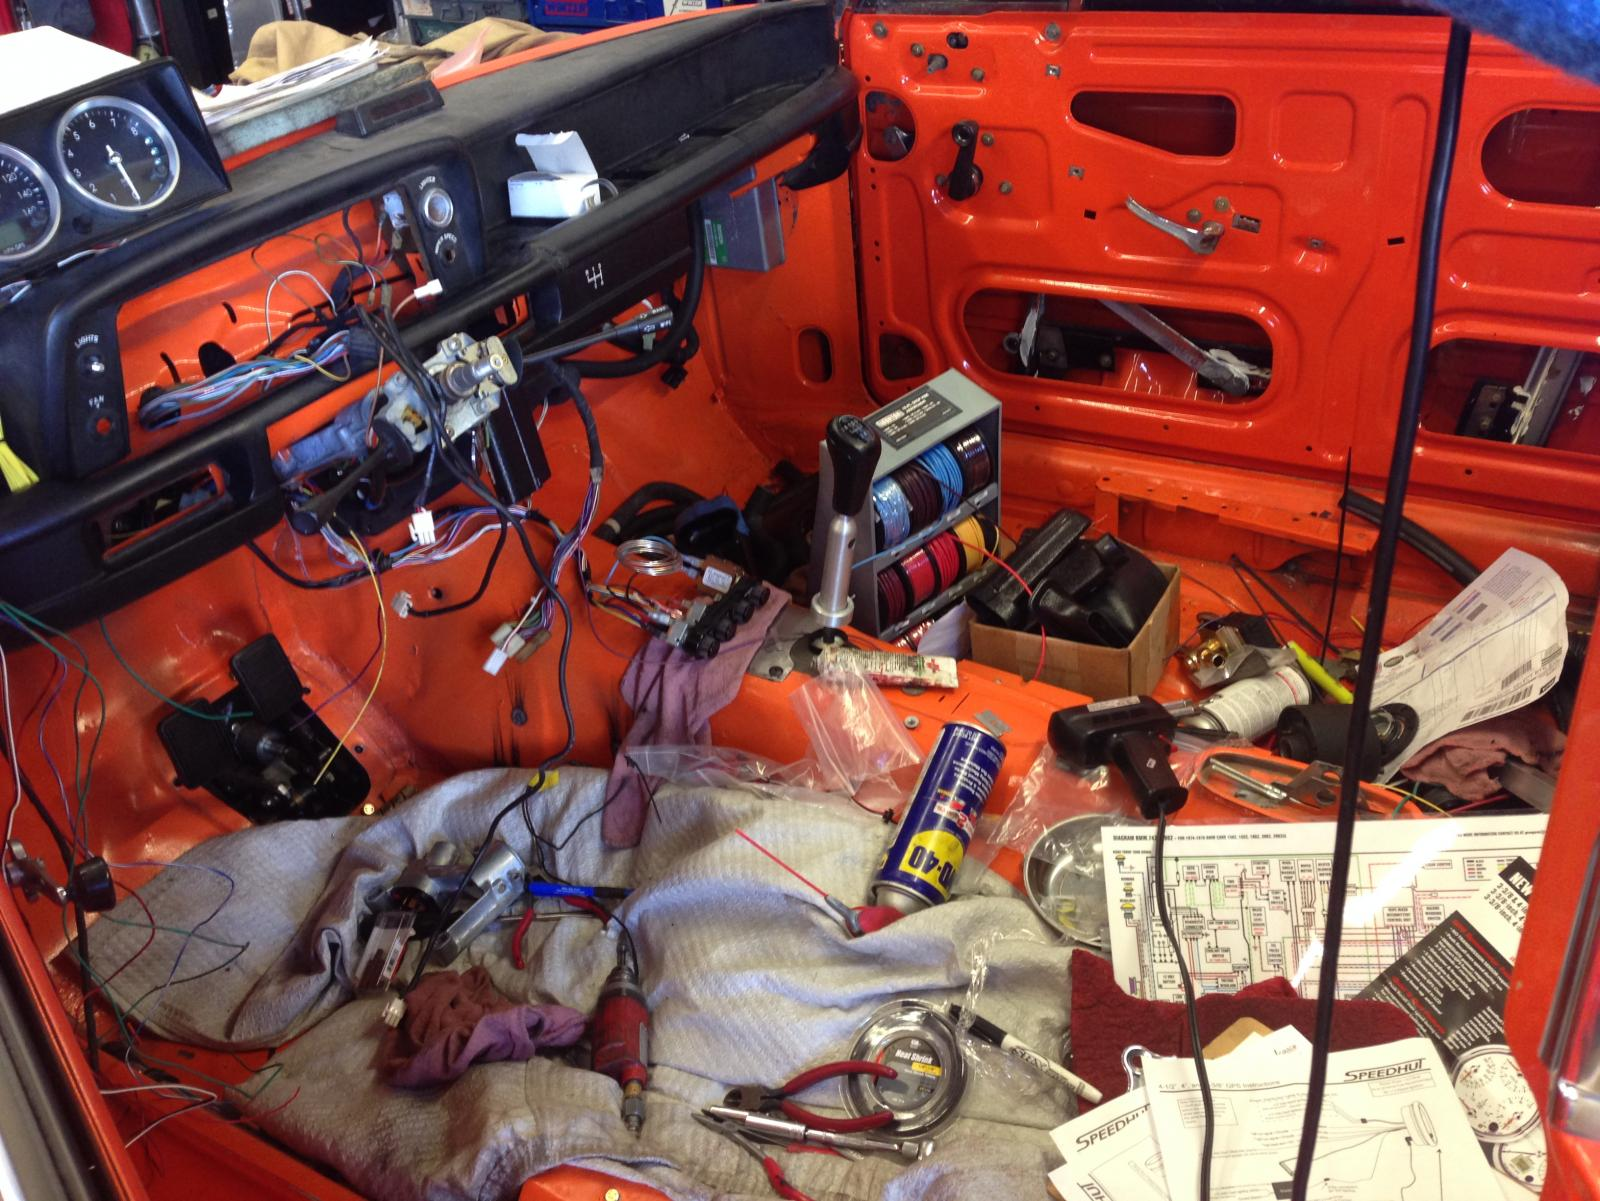 The Great Wiring Debacle M20 Bmw 2002 General Discussion Cps Harness Post 33884 0 08504000 1434058786 Thumbj